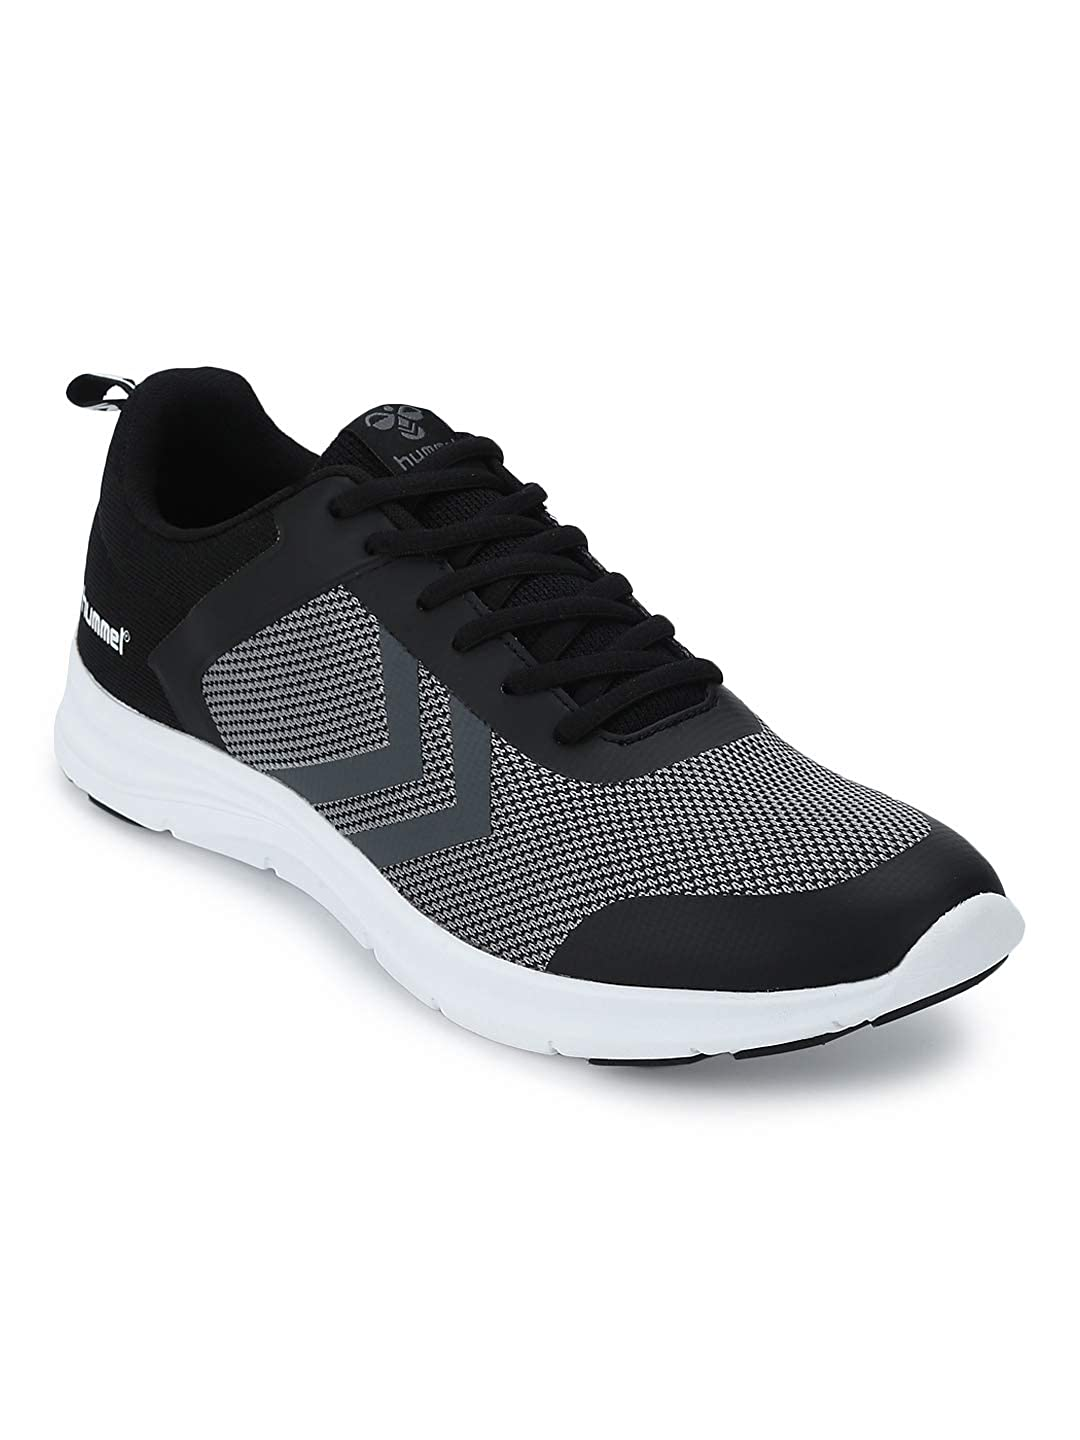 For 469/-(86% Off) hummel Unisex's Kiel Sneakers upto 86% off at Amazon India